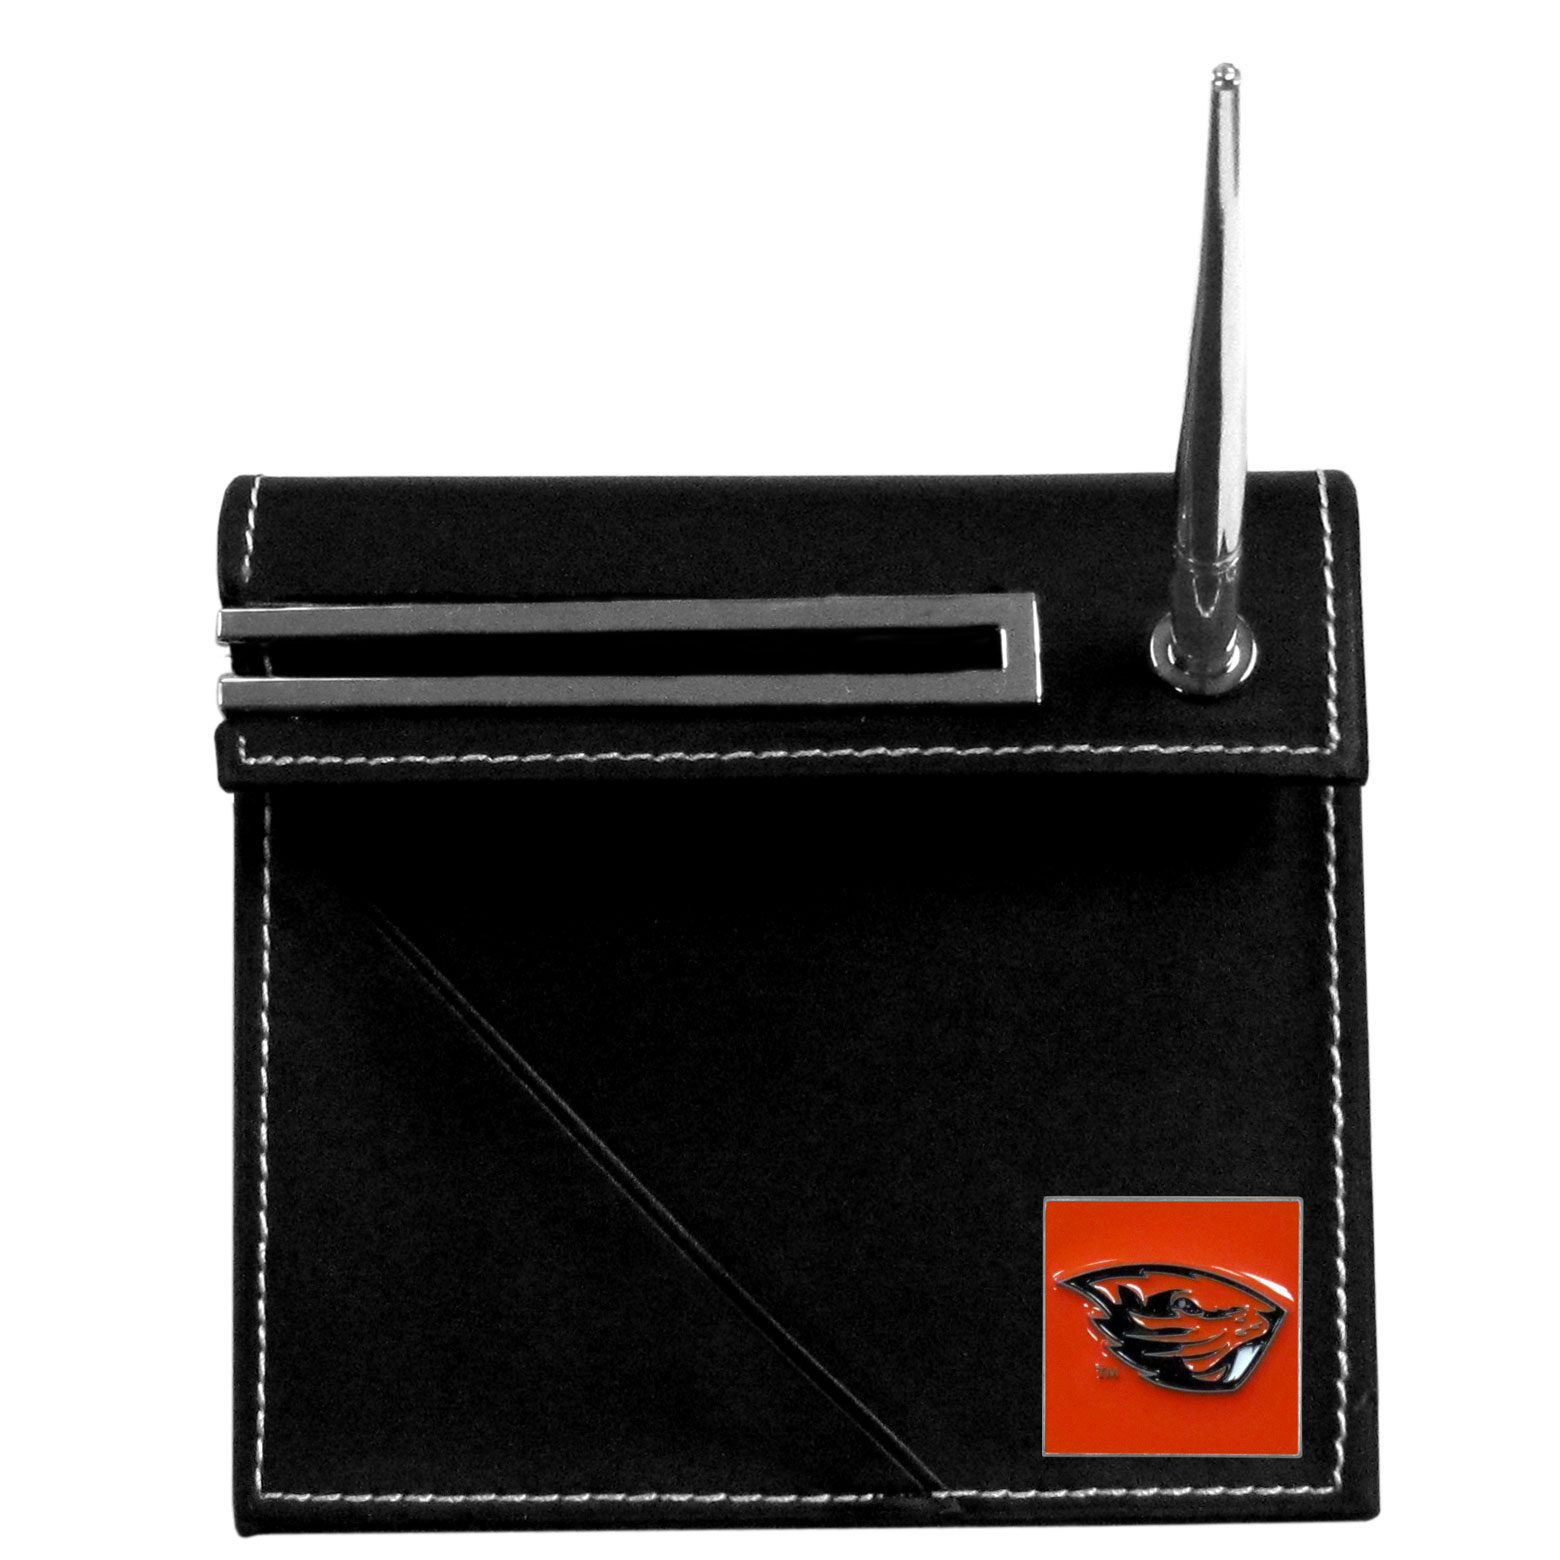 Oregon St. Beavers Desk Set - Our classic Oregon St. Beavers desk set features a slot for a note pad, a slot for your business cards and comes with a stylish pen. The set shows off your school pride with a hand enameled team emblem.